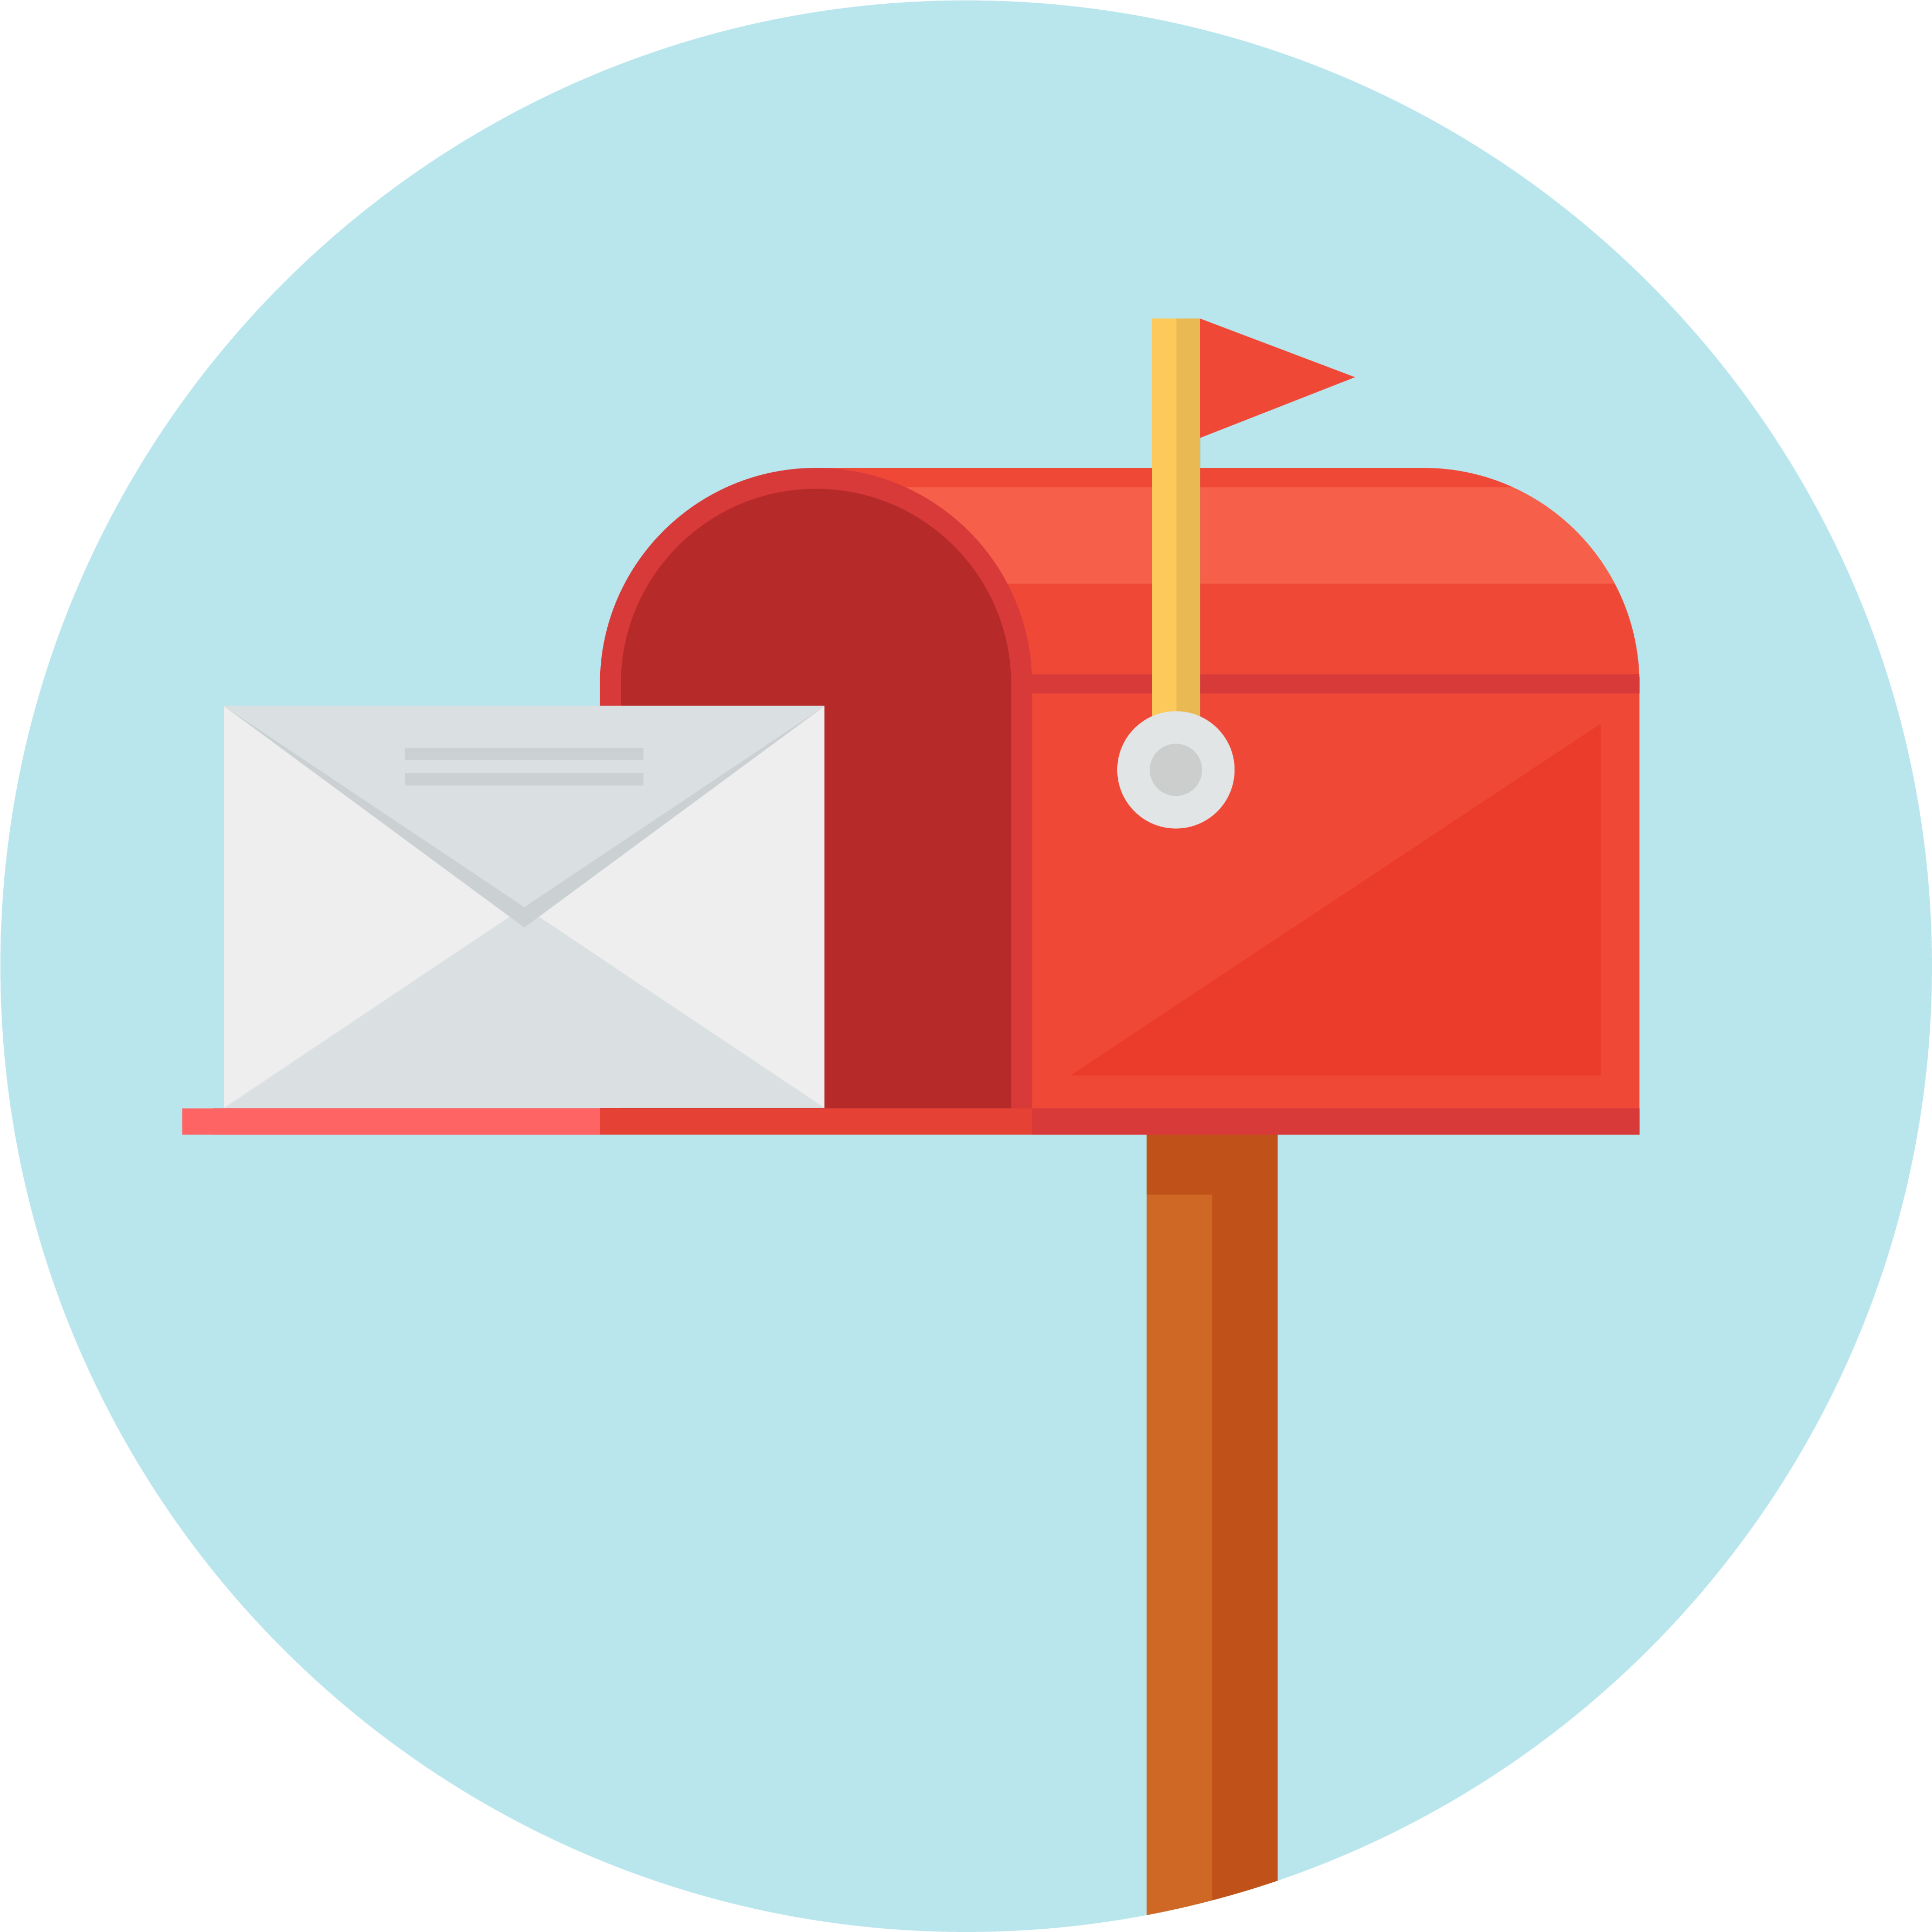 Mailbox clipart direct mail. Strunk media group vector